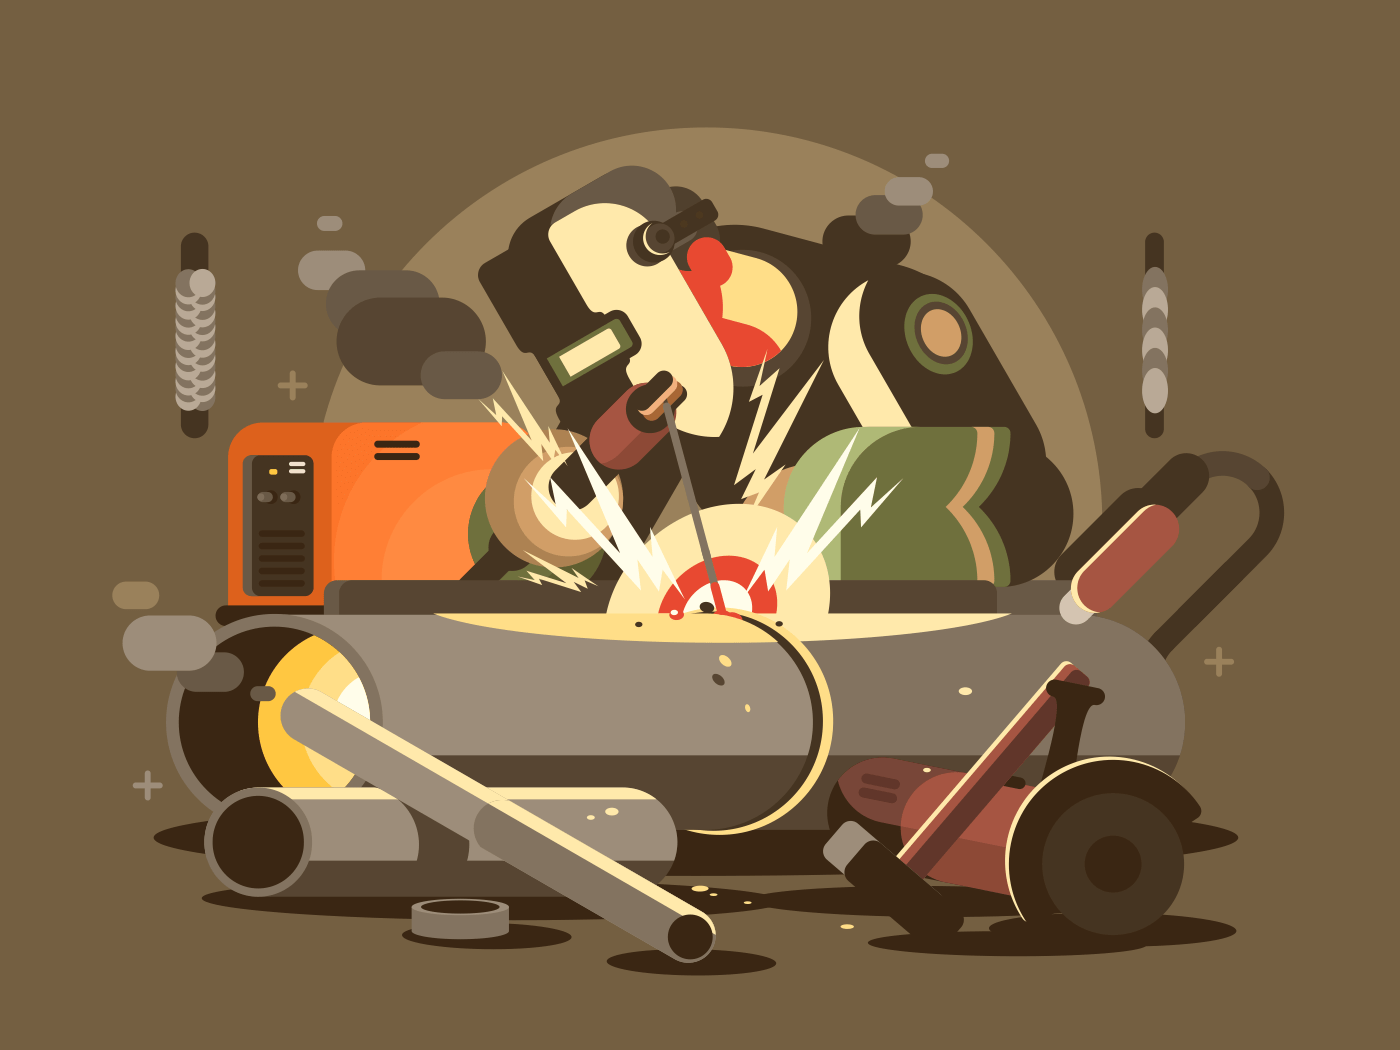 Man welder in mask cuts metal in workshop. Vector illustration